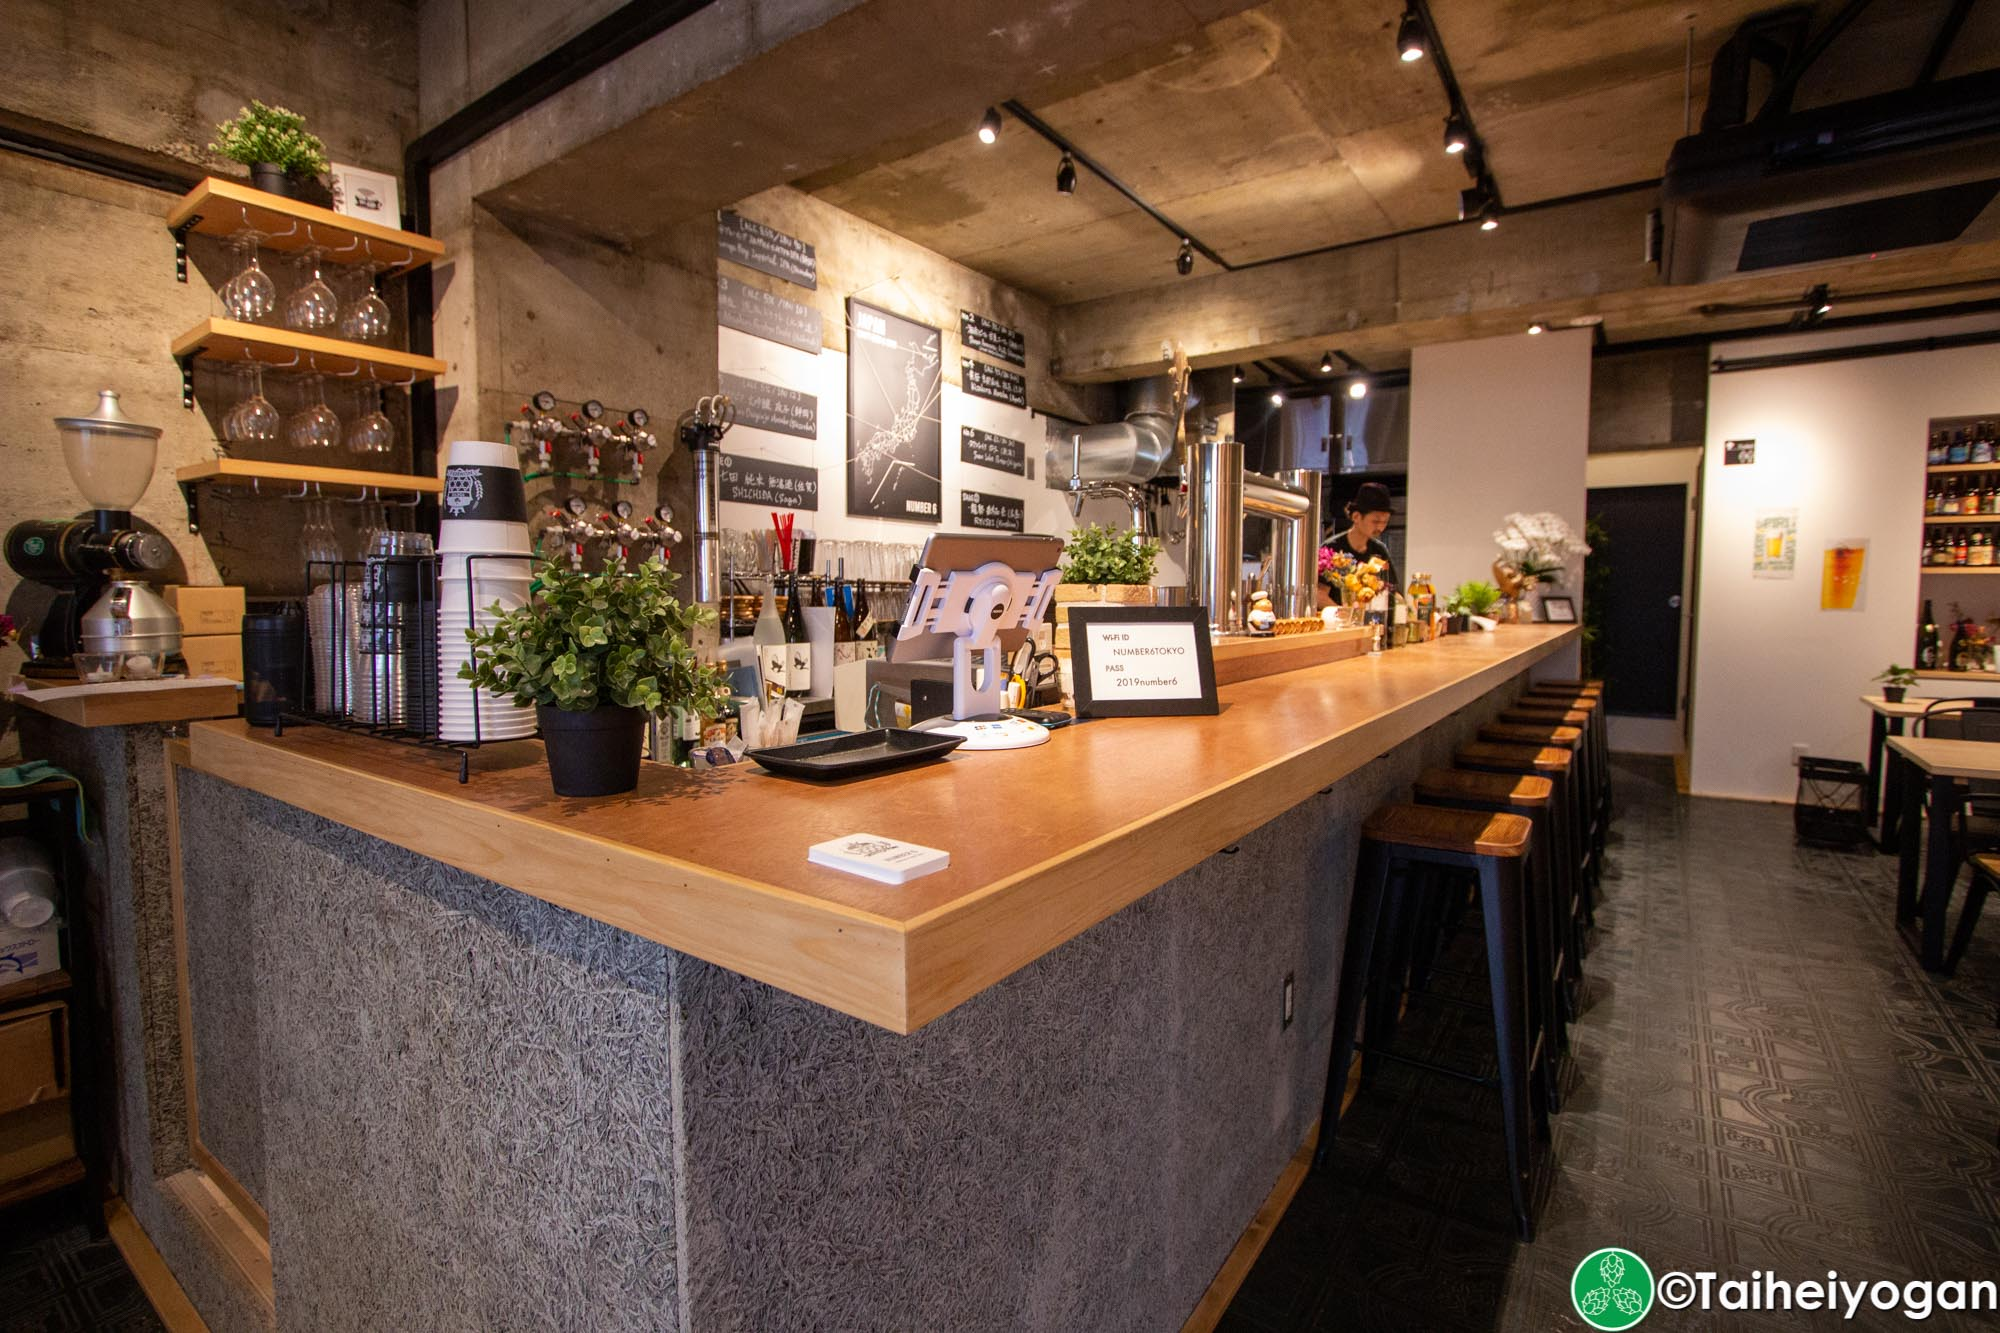 Number 6 - Interior - Bar Counter